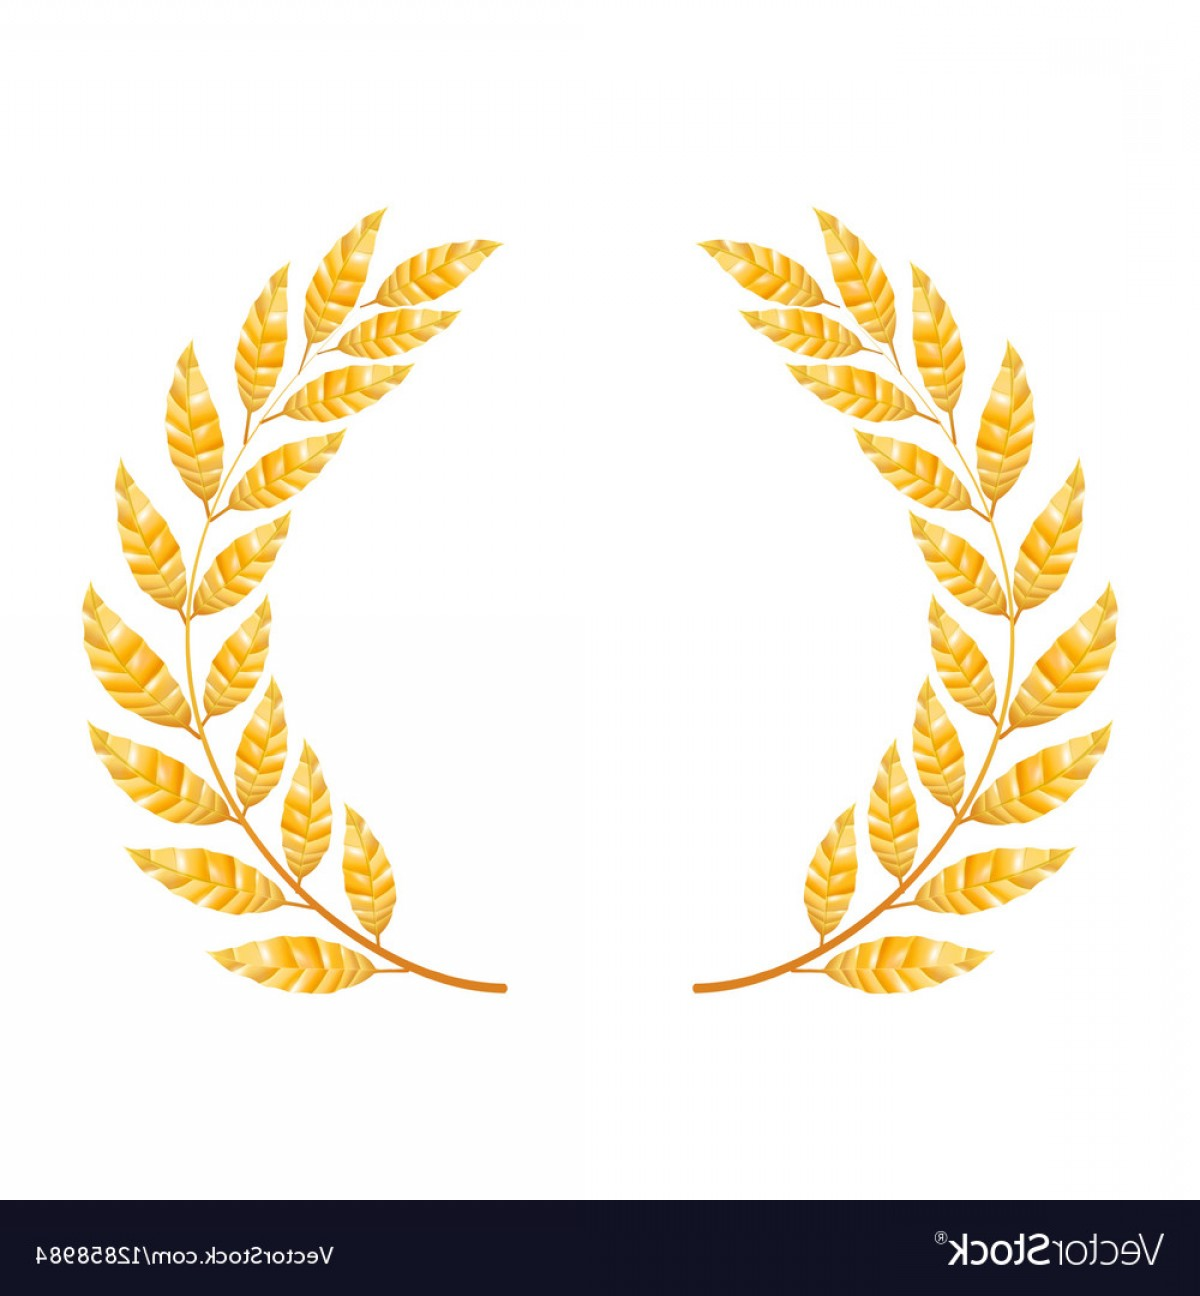 Award Vector Leaves: Gold Laurel Shine Wreath Award Design Vector